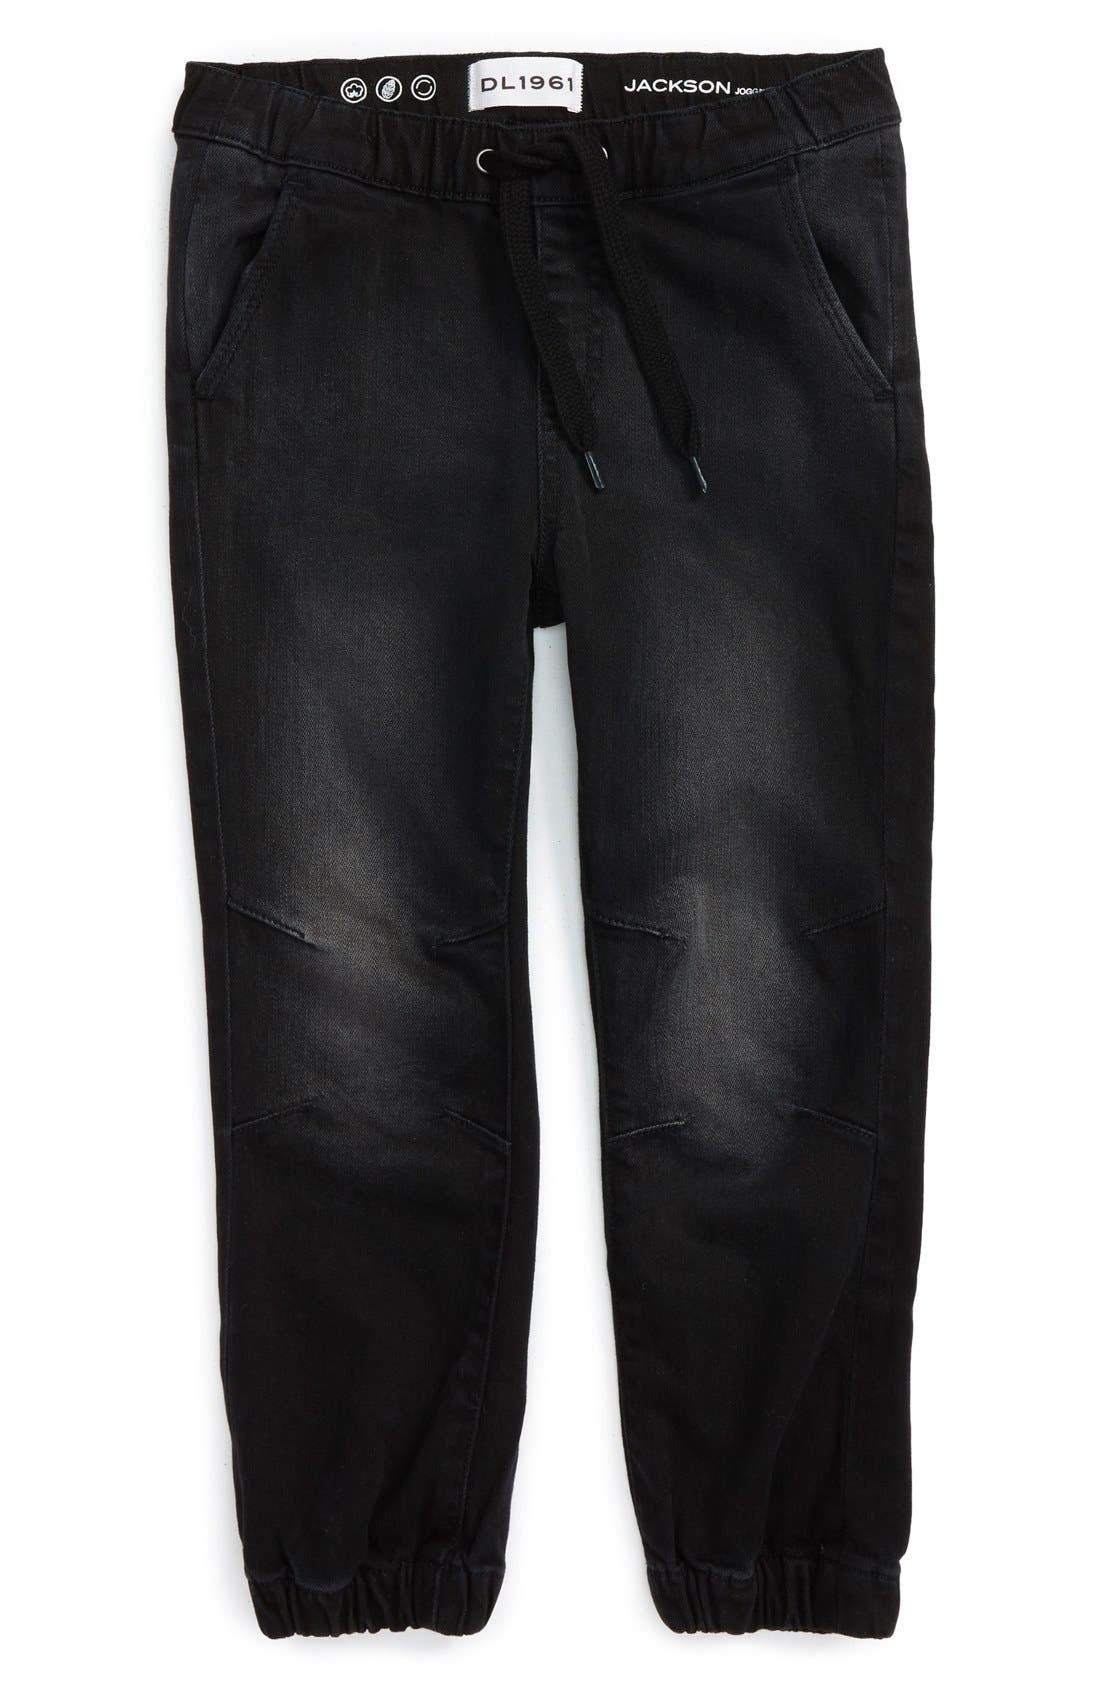 'Jackson' Jogger Pants,                             Main thumbnail 1, color,